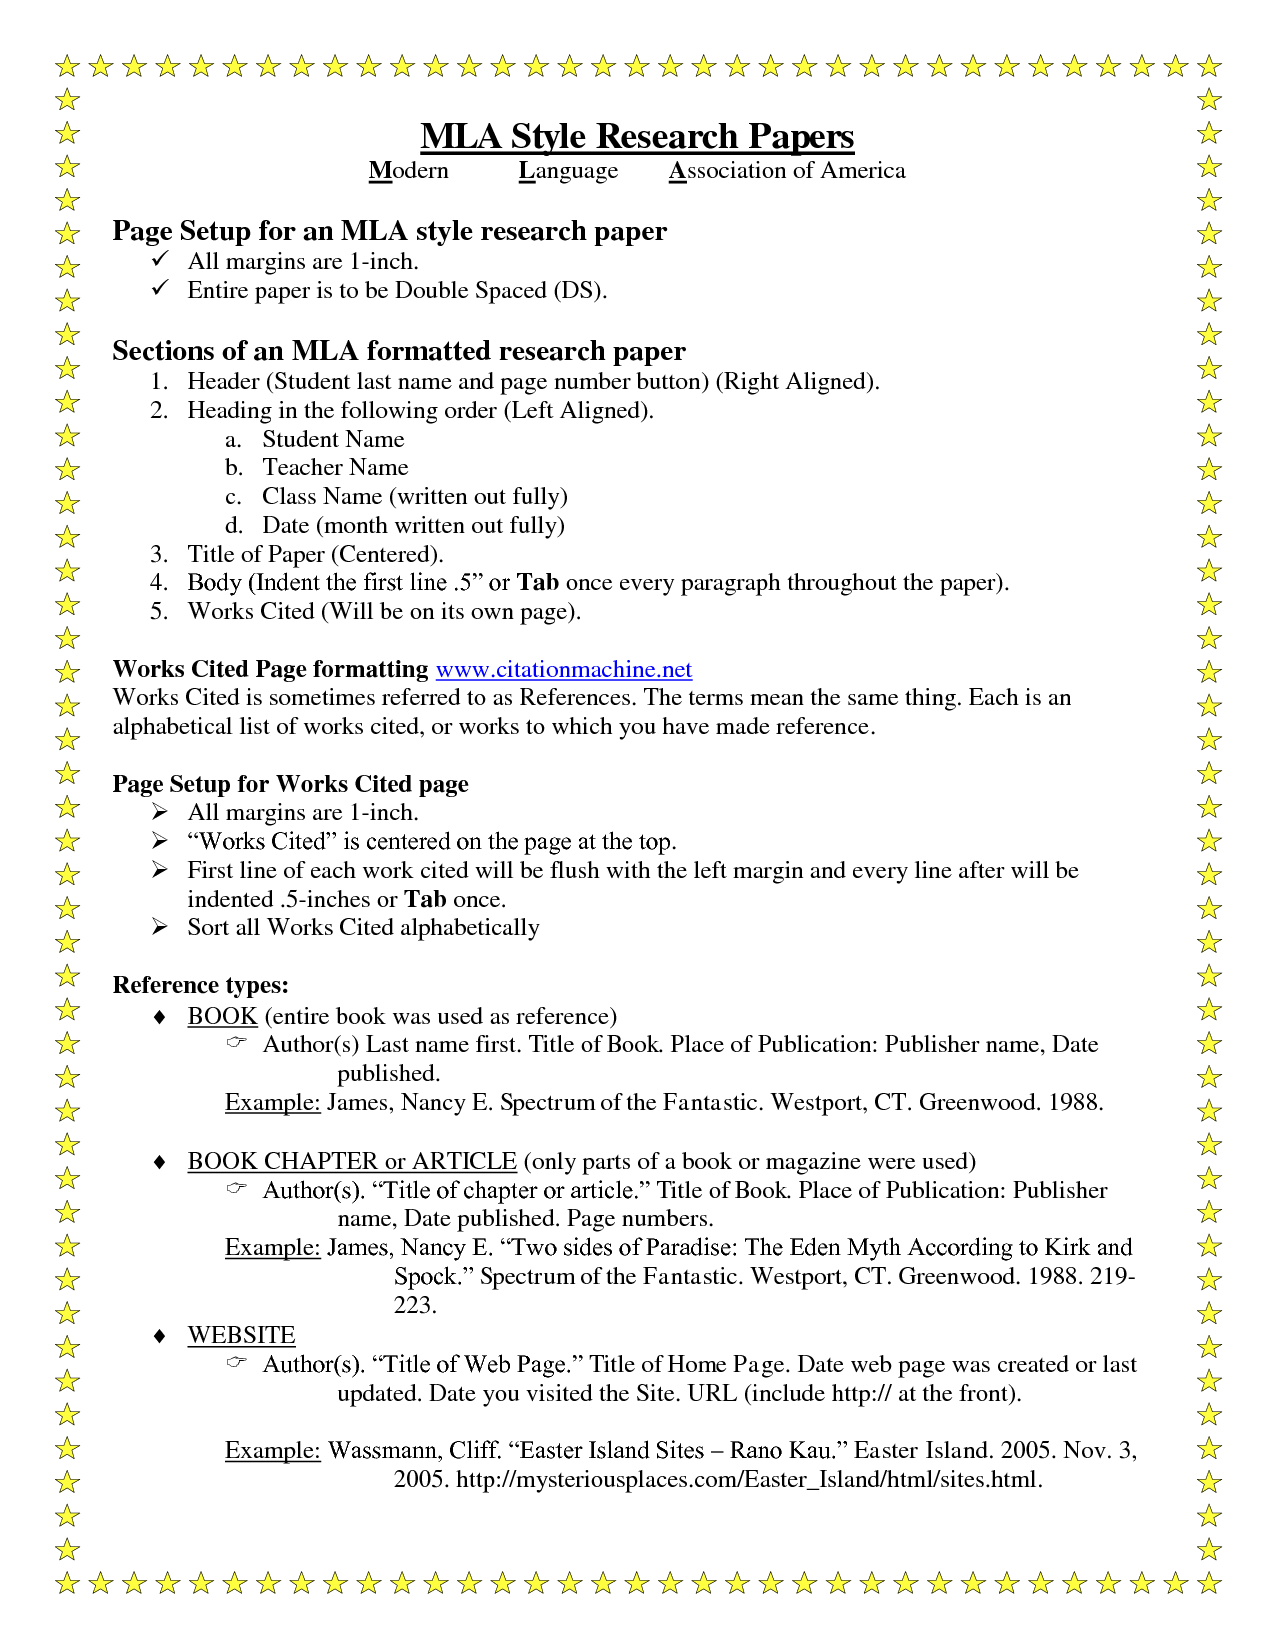 002 Order Ofs In Research Paper Frightening Heading Apa Headings Example Mla Full